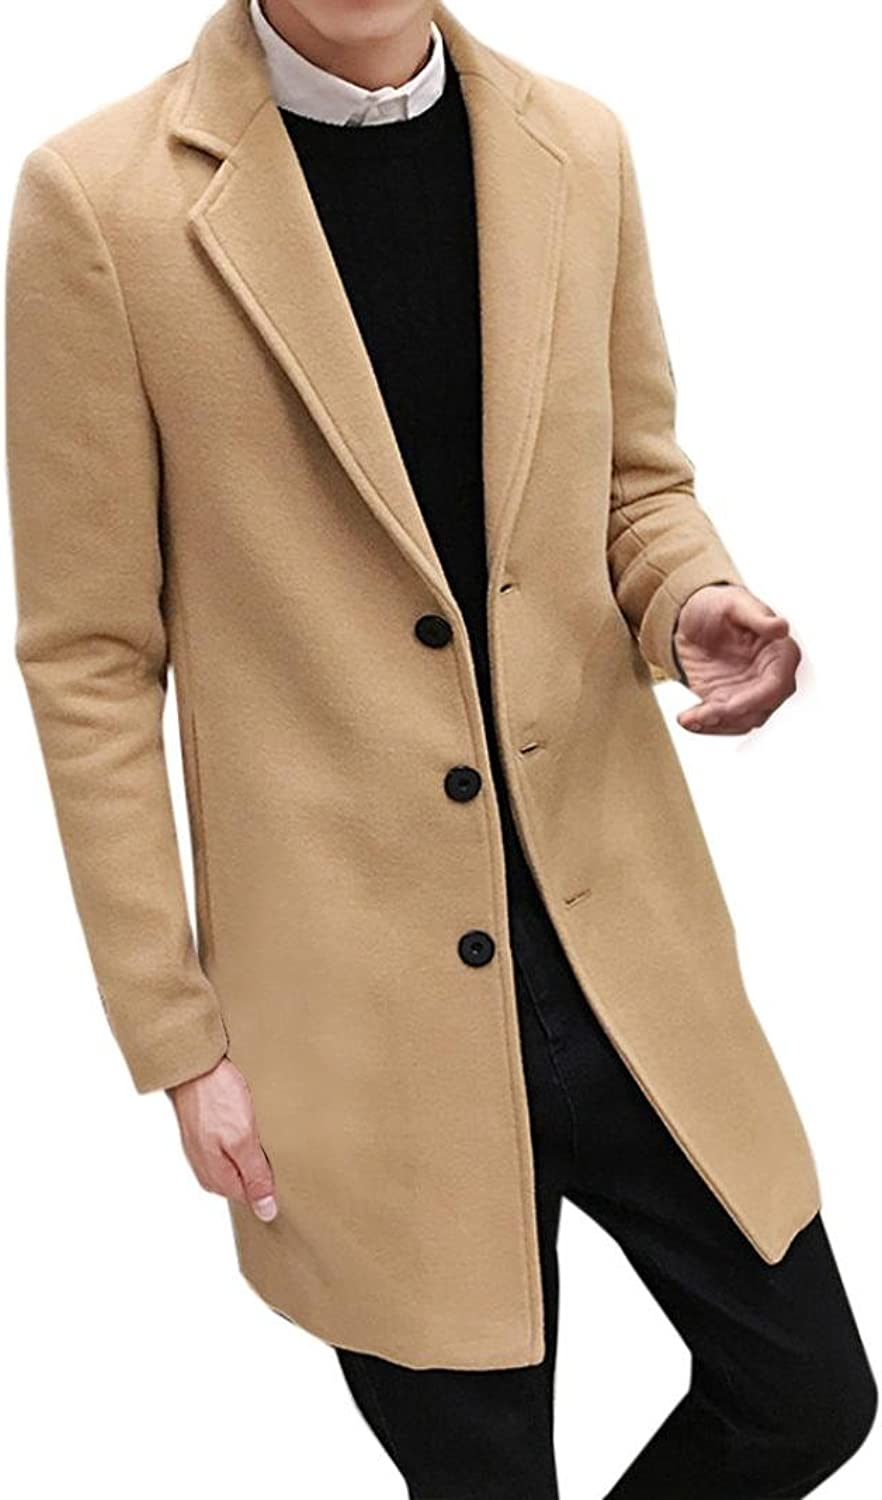 ManxiVoo Autumn Winter Coats for Men Wool Blend Overcoat Single Breasted Figuring Pea coat Long Jacket Outwear (L, Khaki)